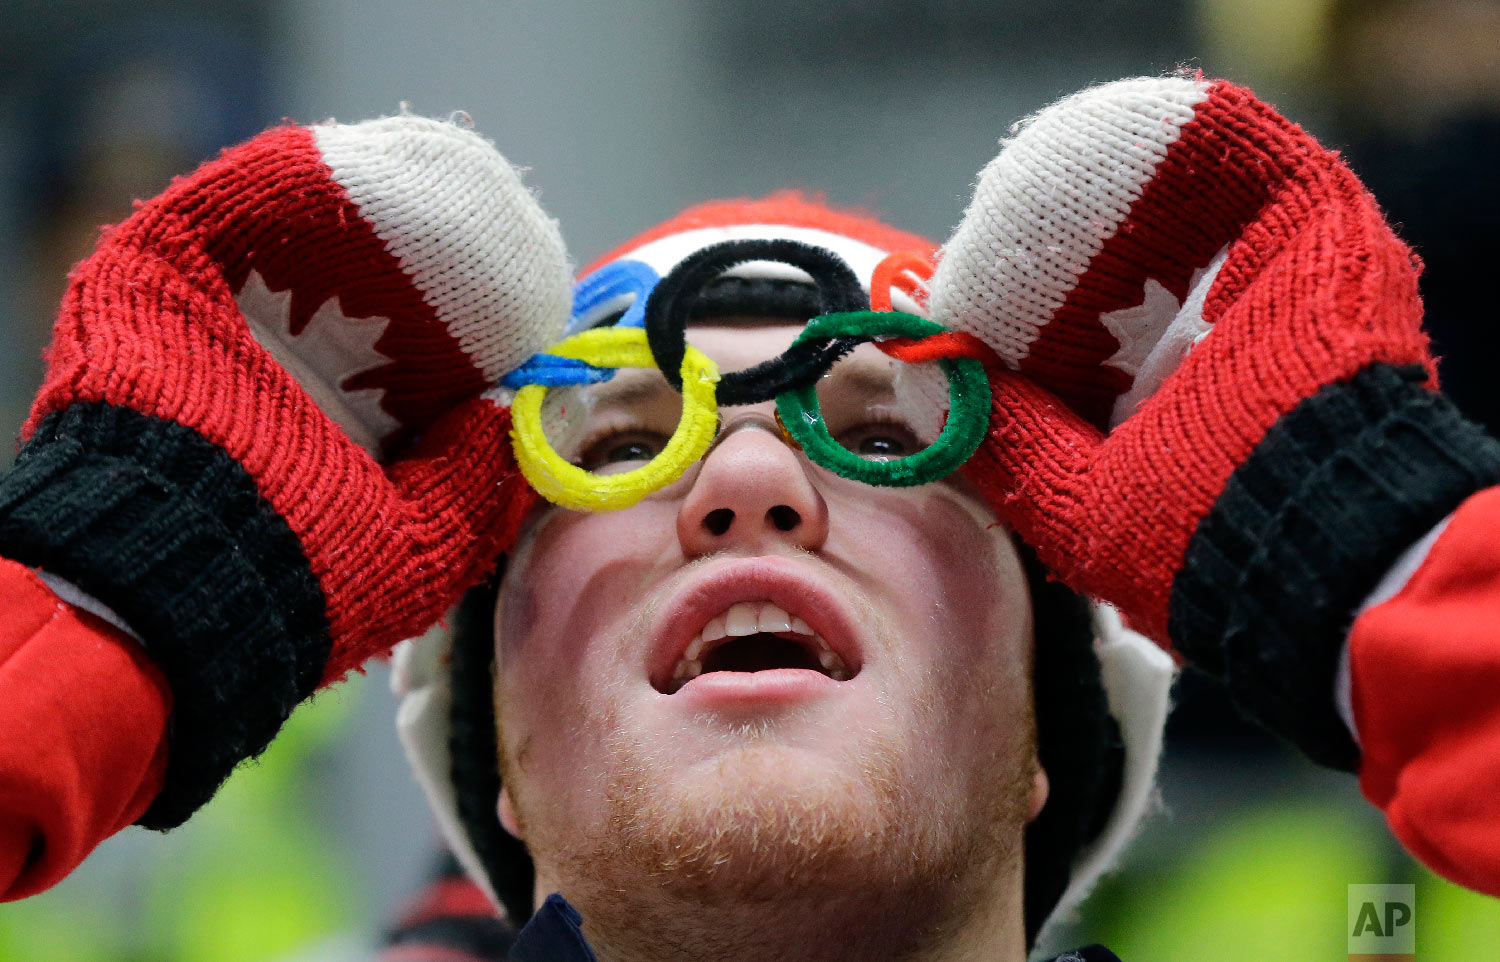 A Canadian fan watches the action during the men's luge at the 2018 Winter Olympics in Pyeongchang, South Korea, Saturday, Feb. 10, 2018. (AP Photo/Andy Wong)